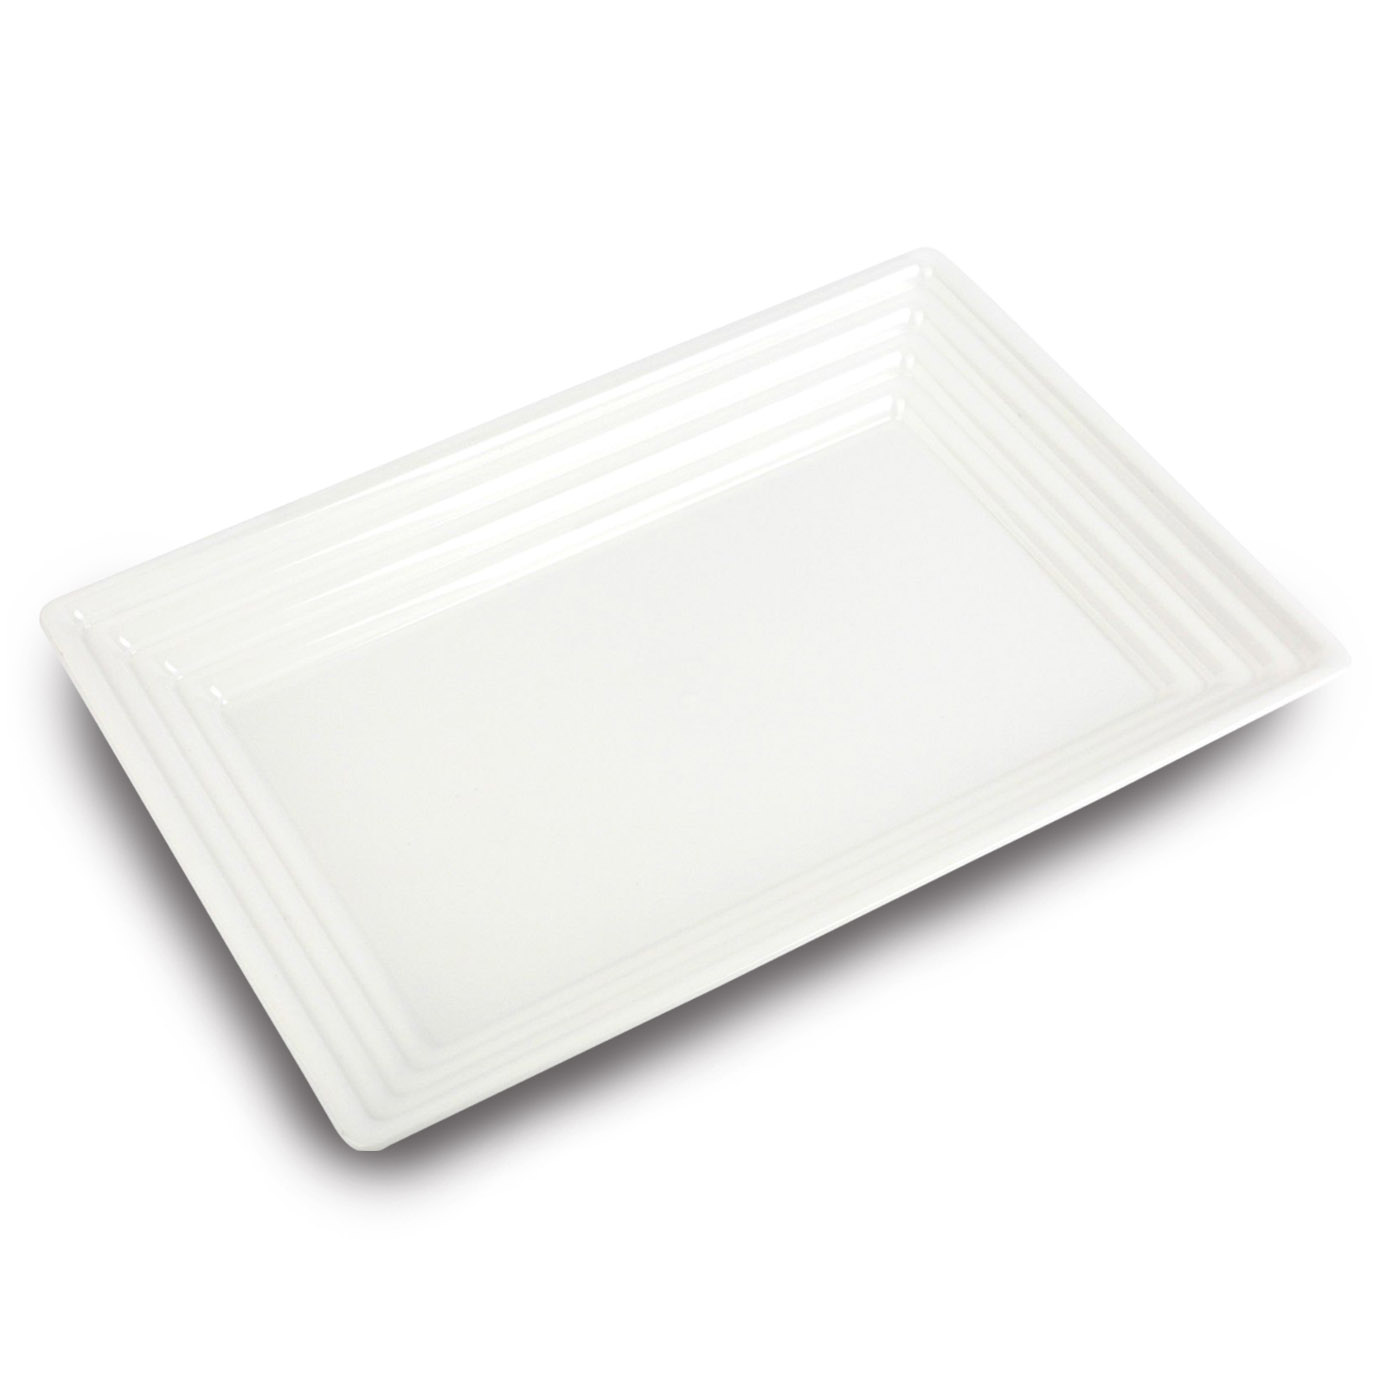 Black Serving Tray Kaya Collection White Plastic Serving Tray Heavyweight Rectangular Platter 11